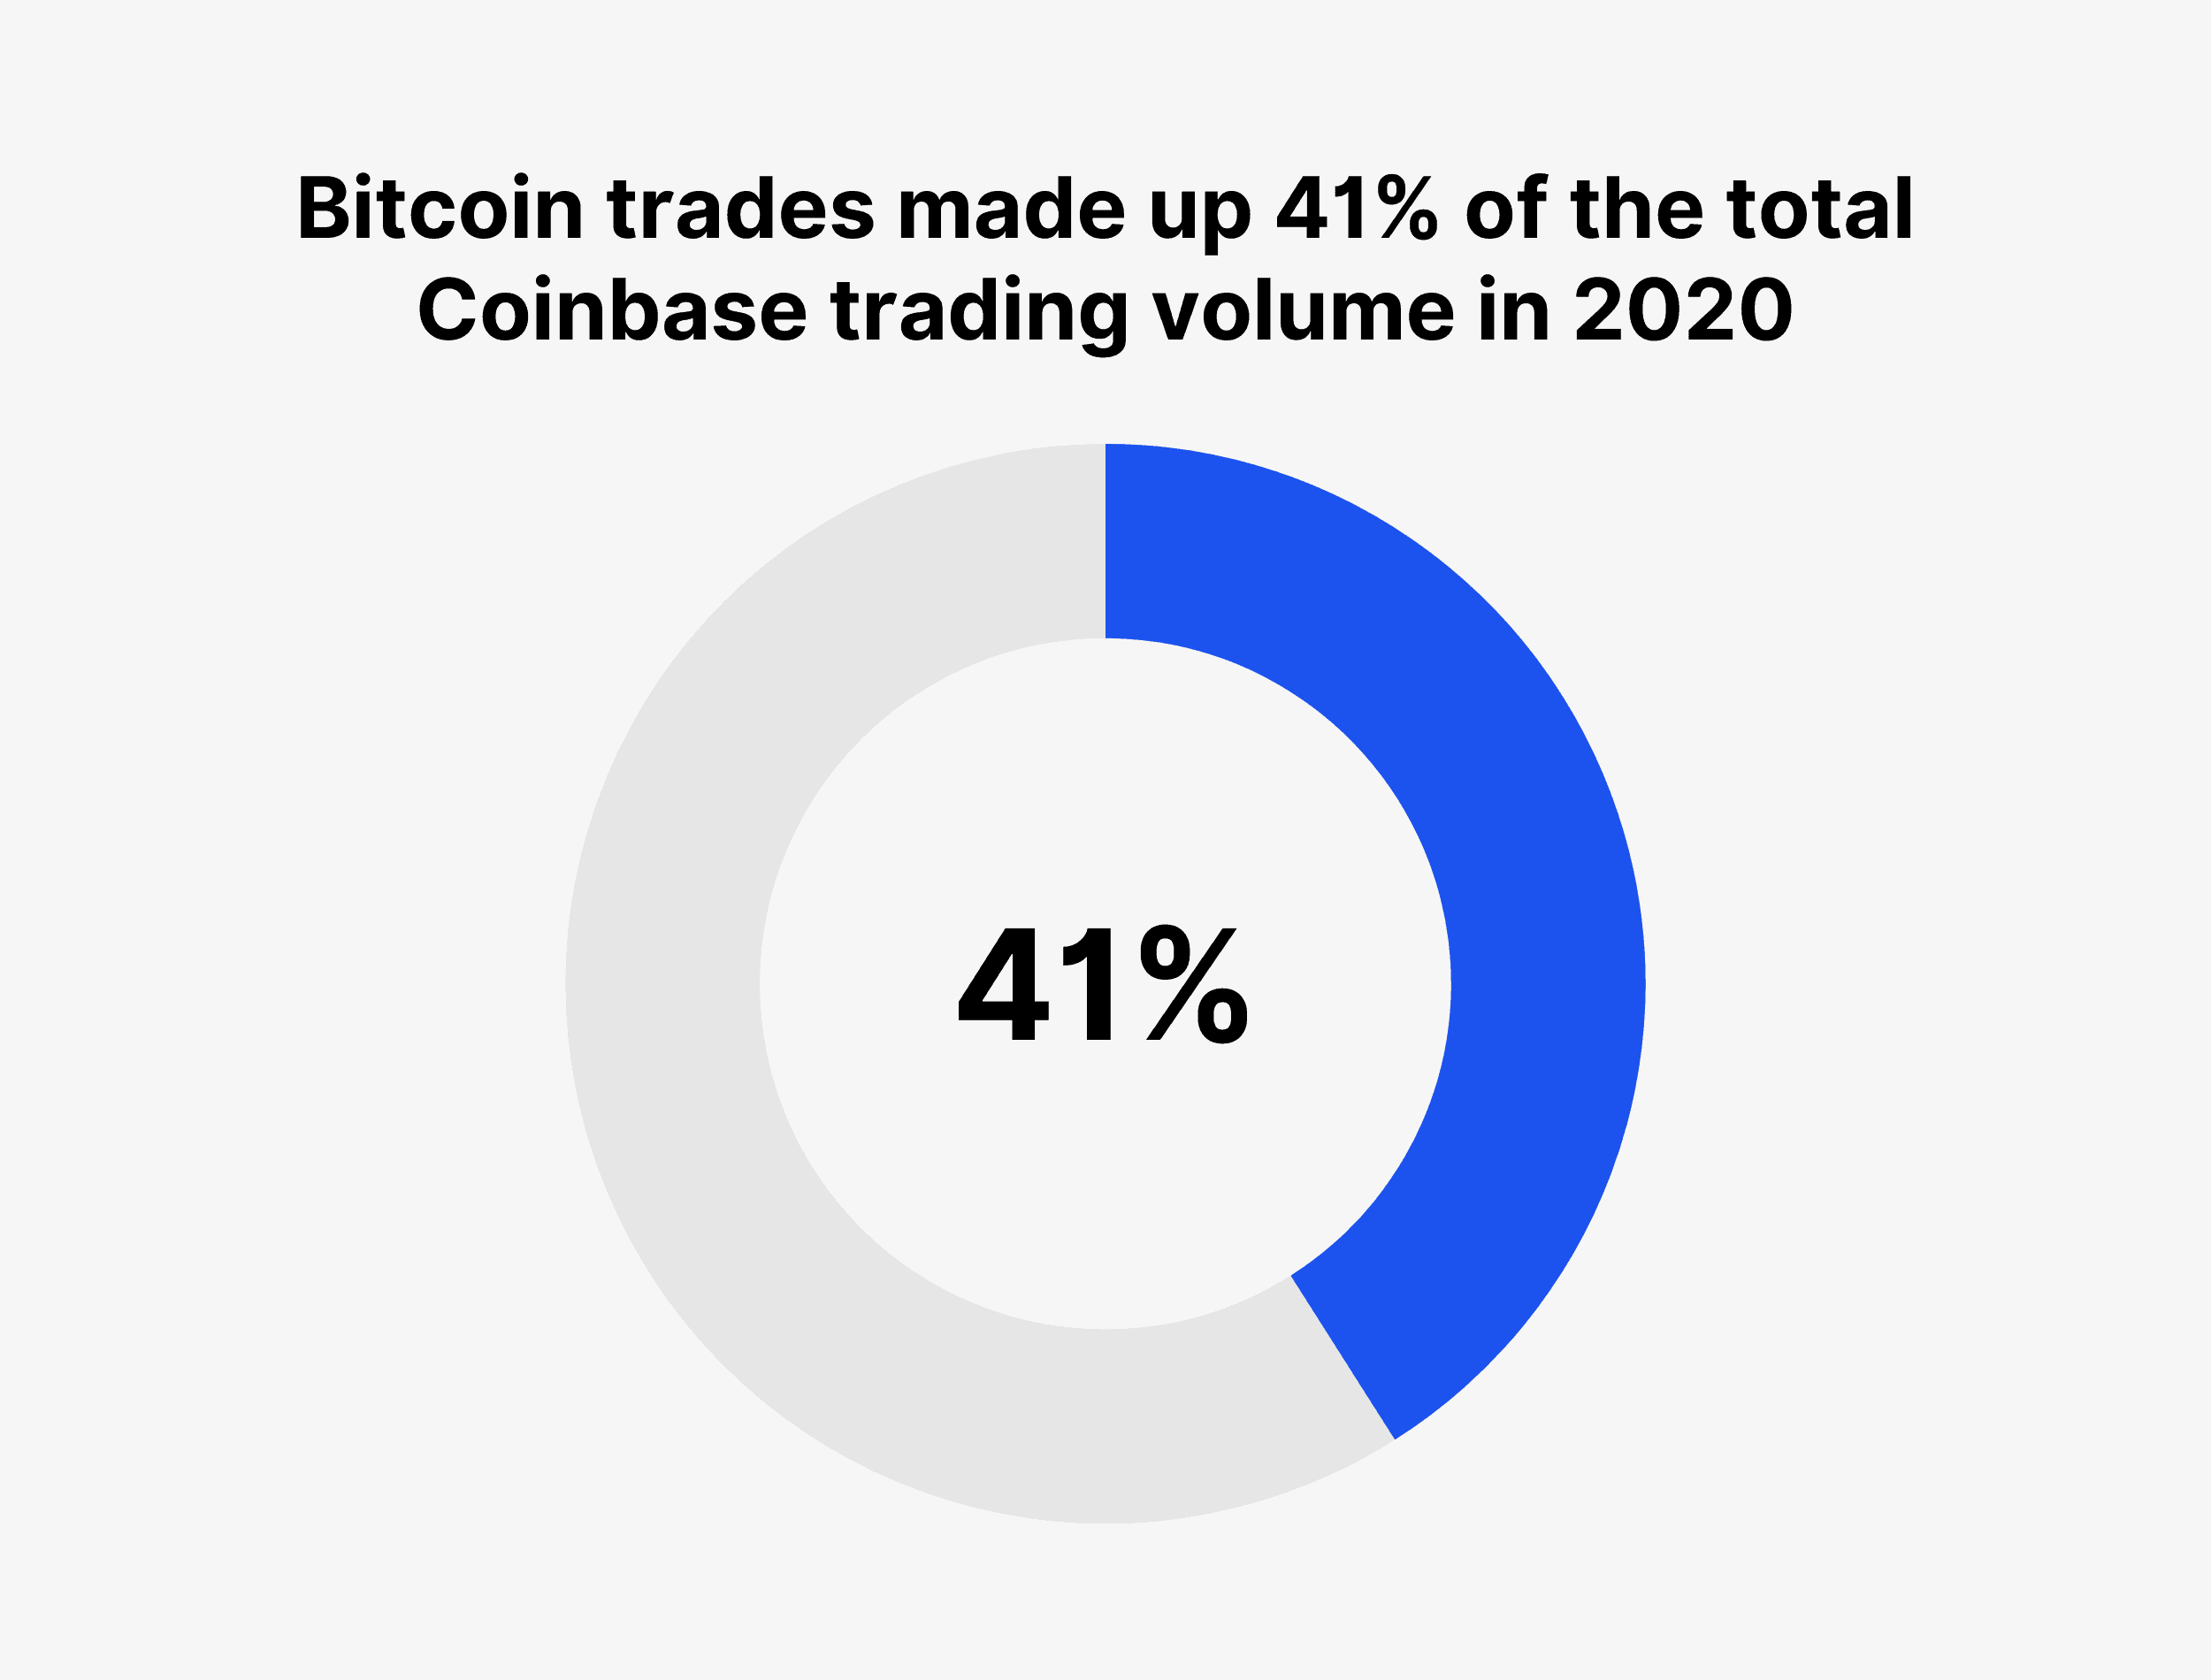 Bitcoin trades made up 41% of the total Coinbase trading volume in 2020